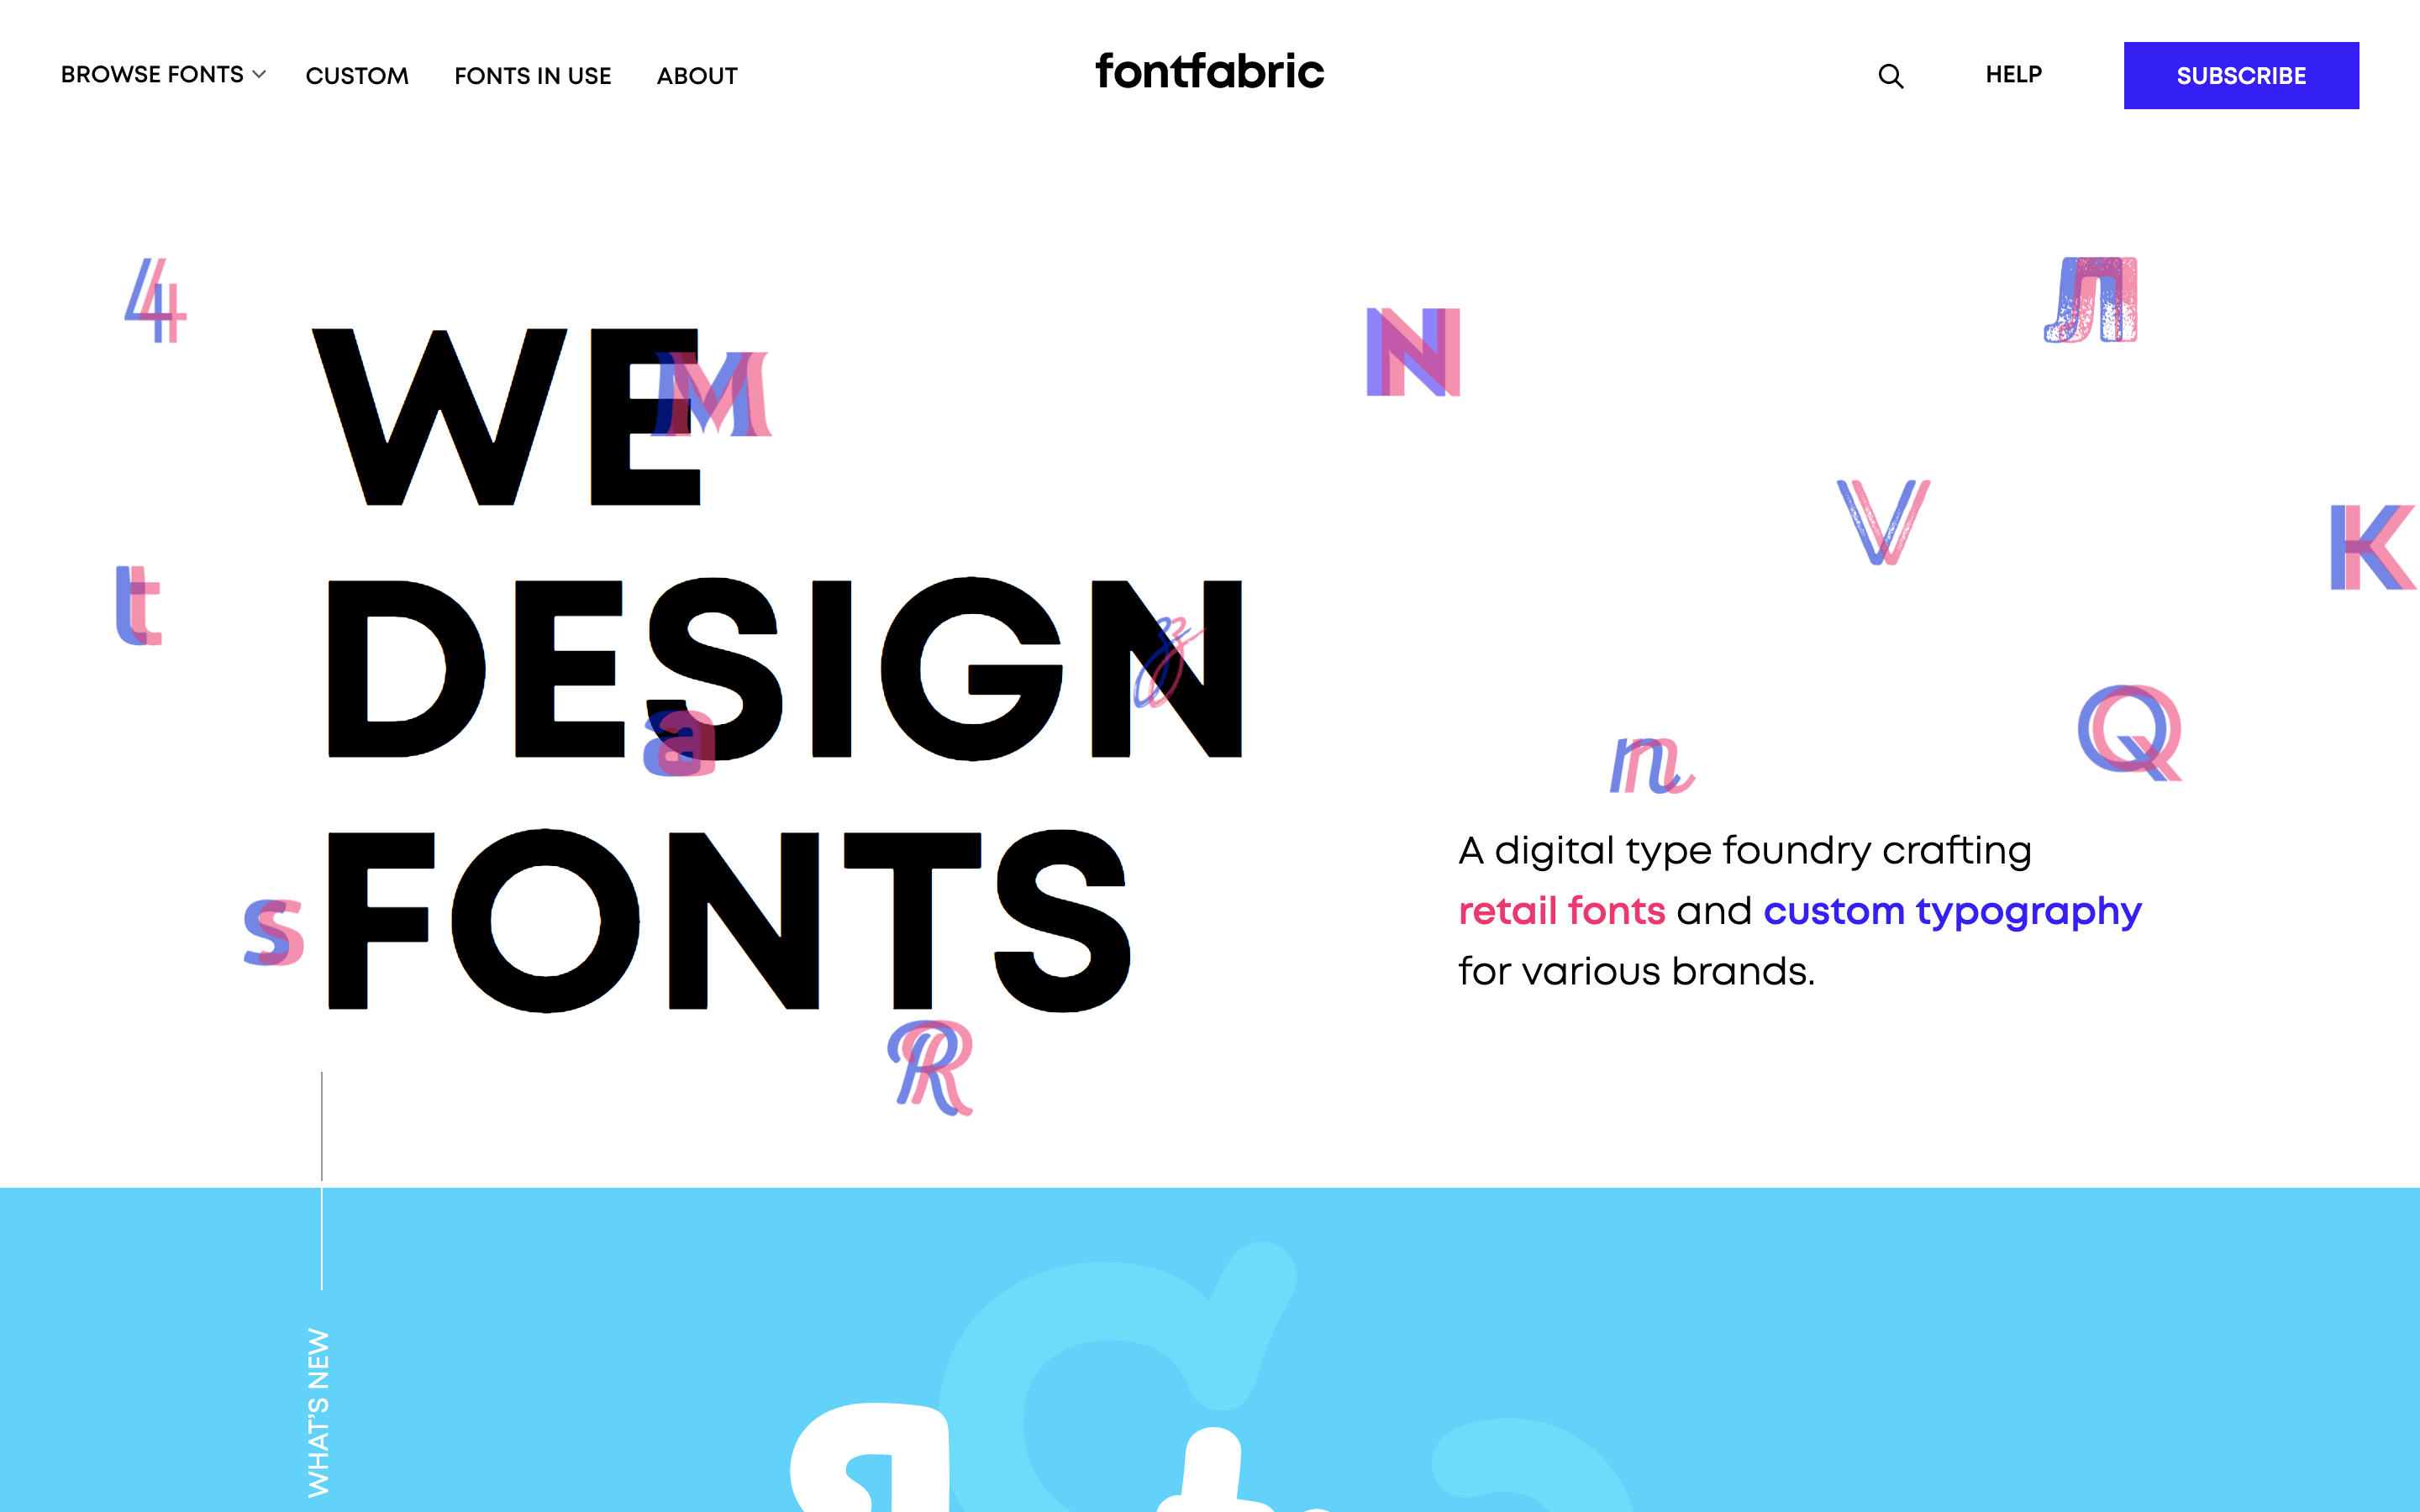 10 Best Web Typography Libraries to Use In 2019 - Lia